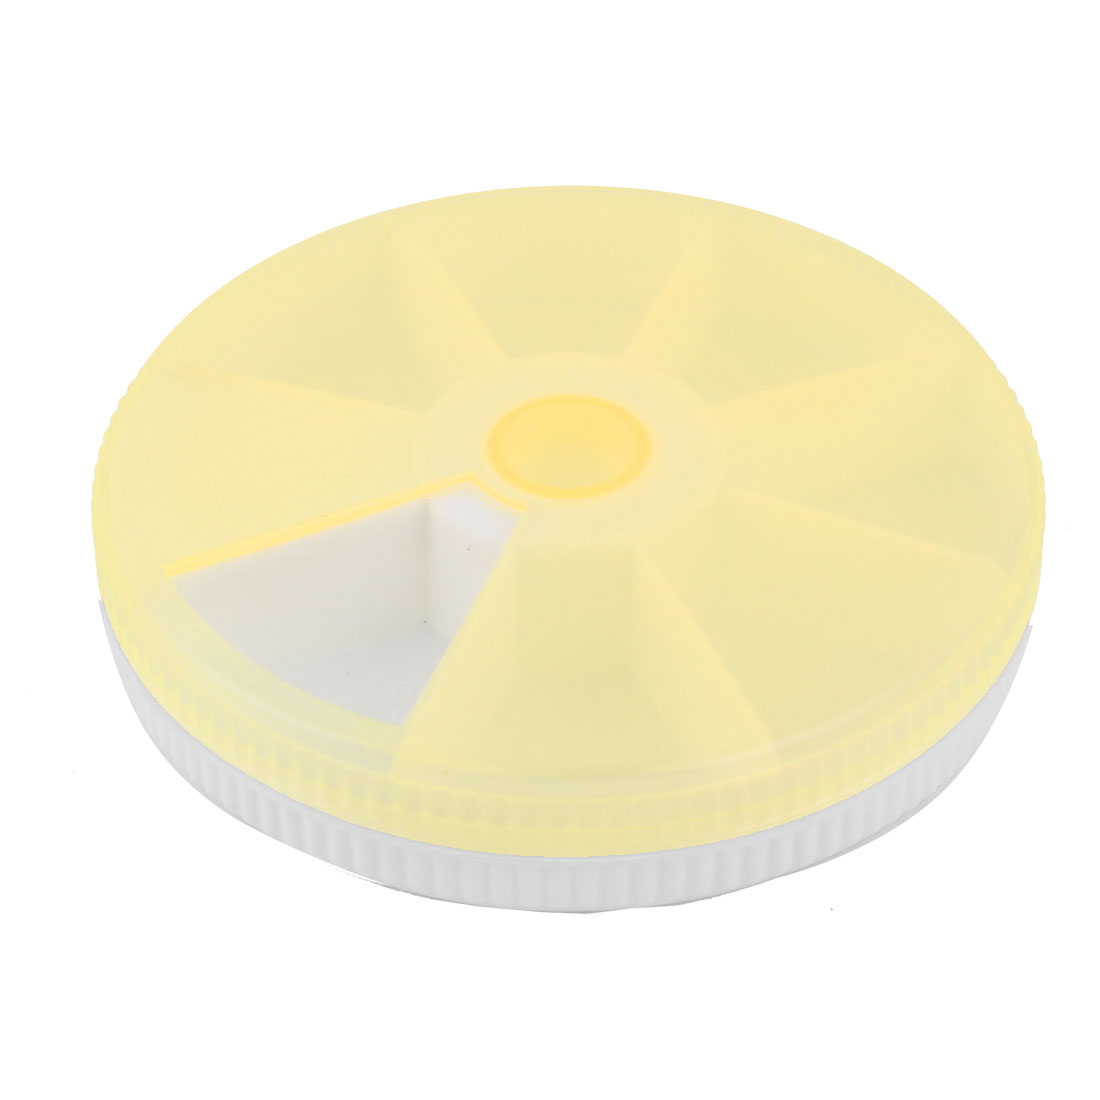 Home Plastic Round 7 Compartments Days Medicine Pill Box Case Pillbox Yellow Clear